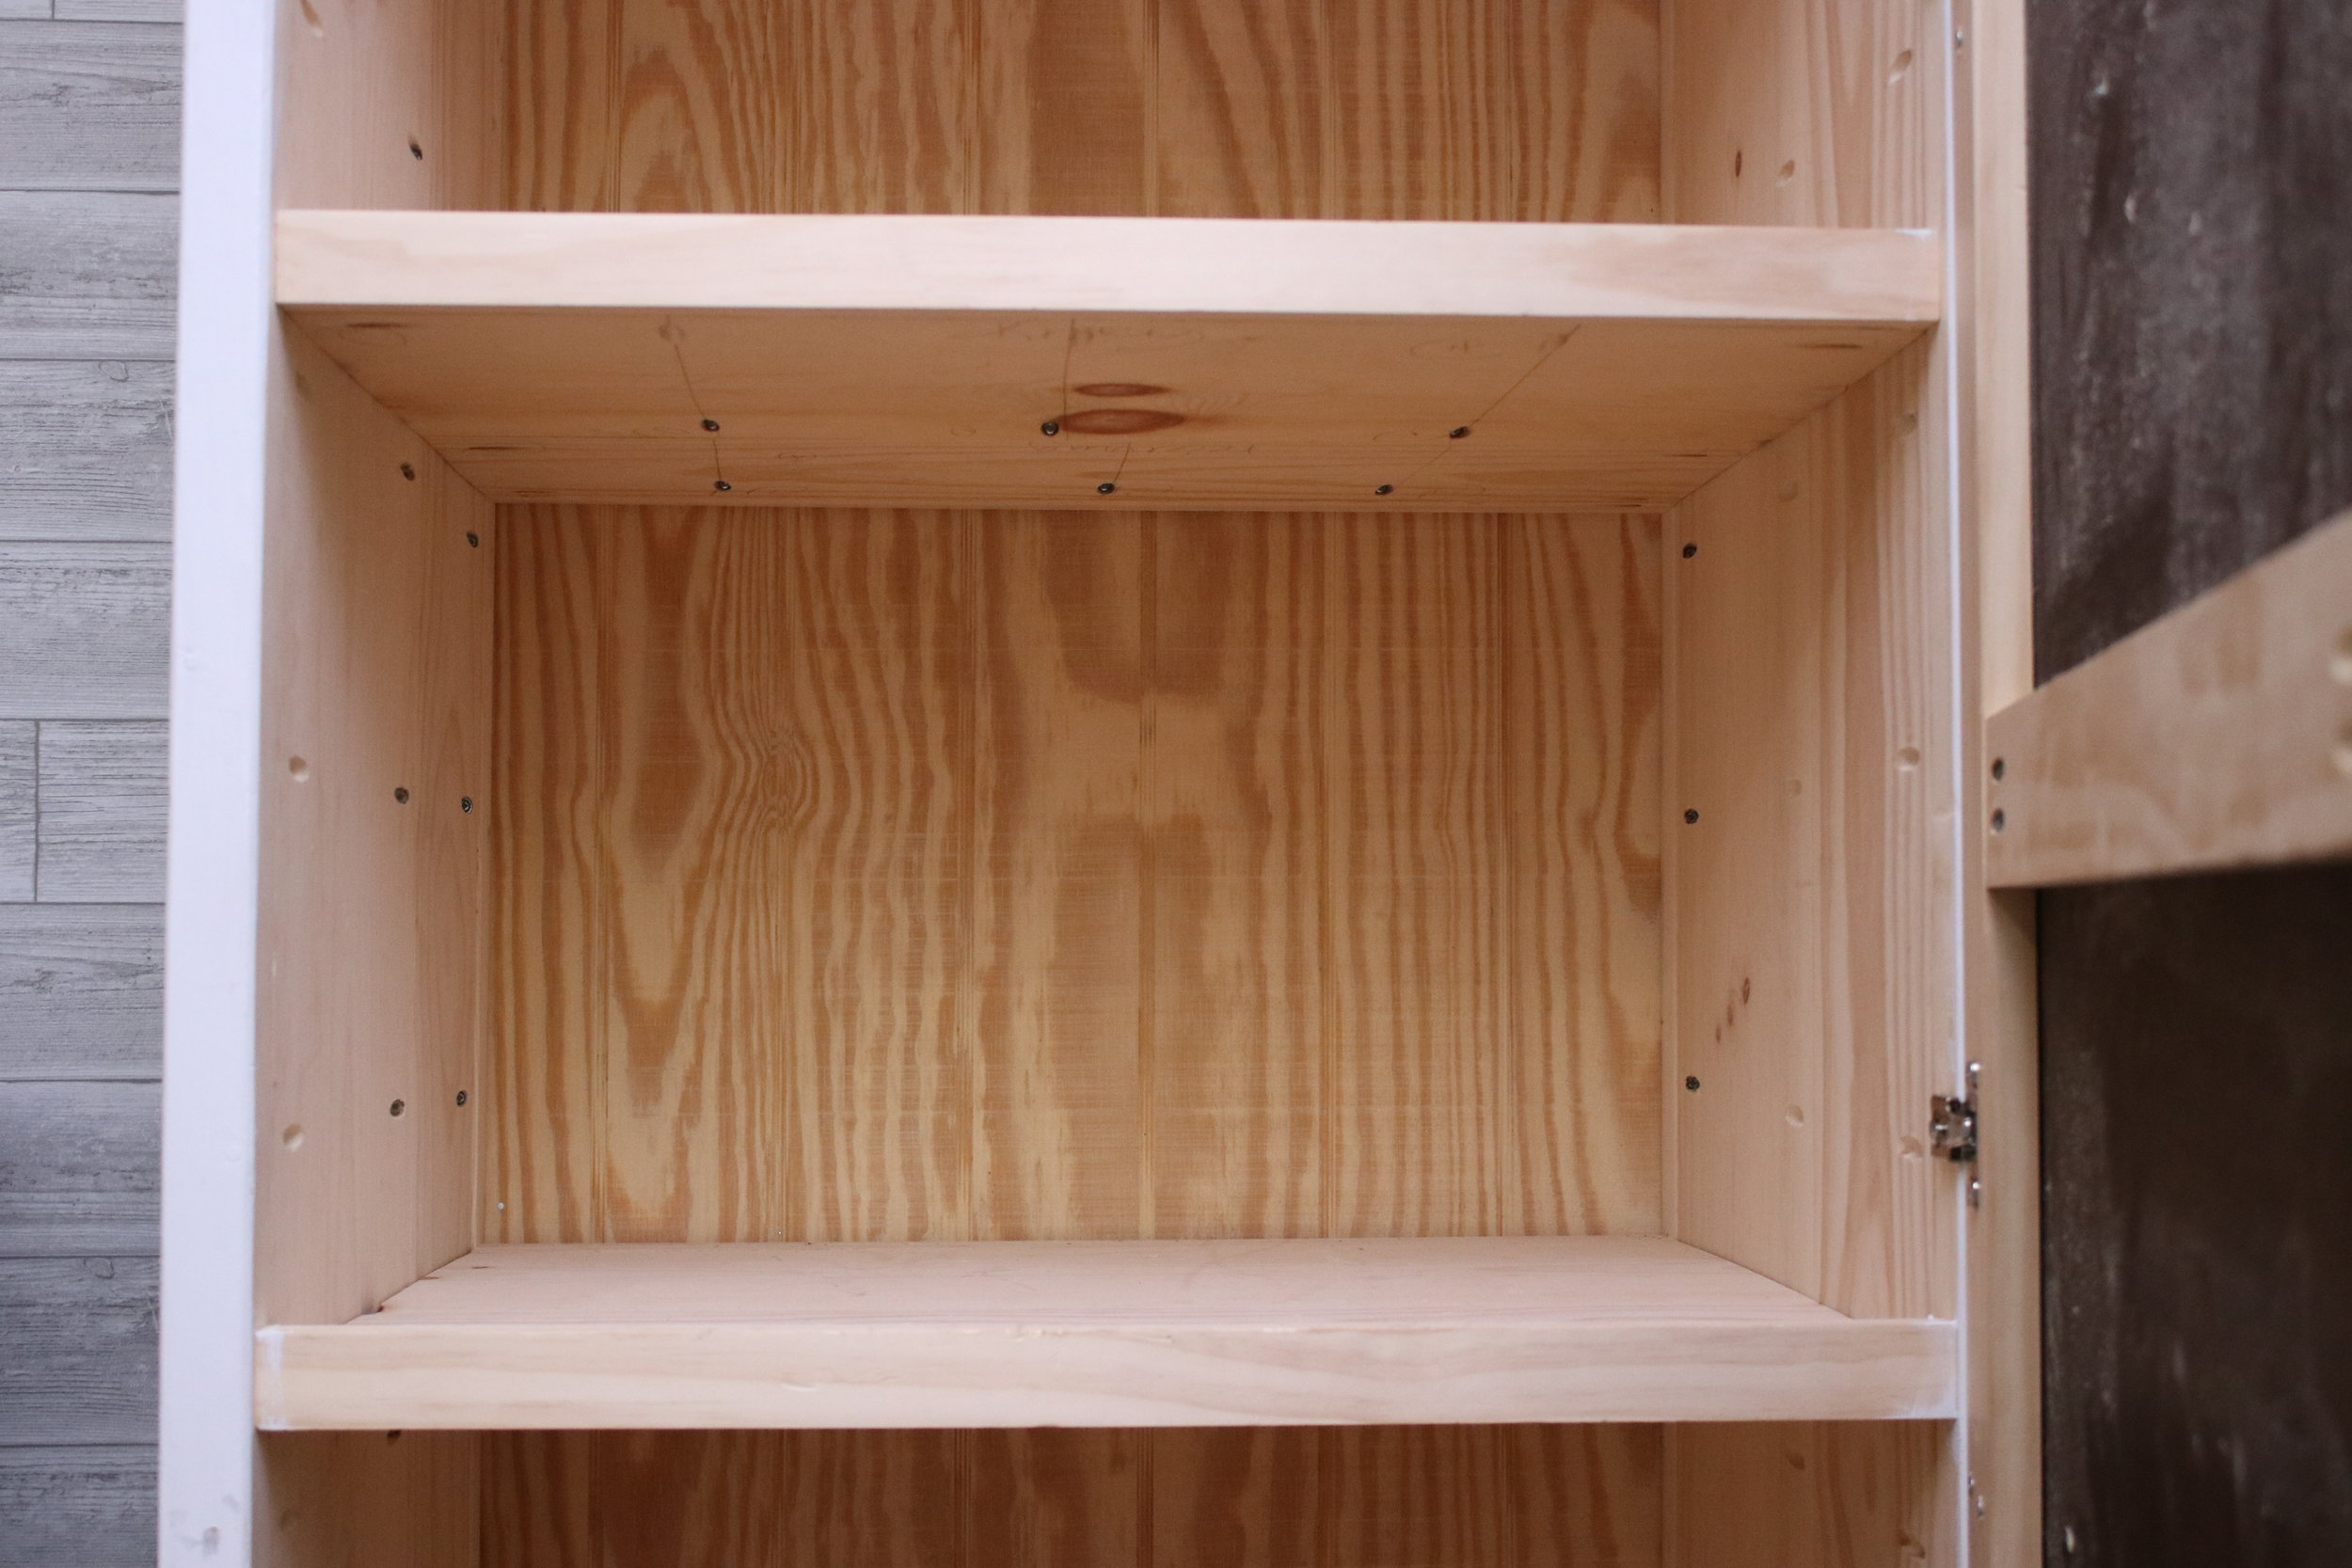 How to Build a Storage Cabinet in 9 Easy Steps